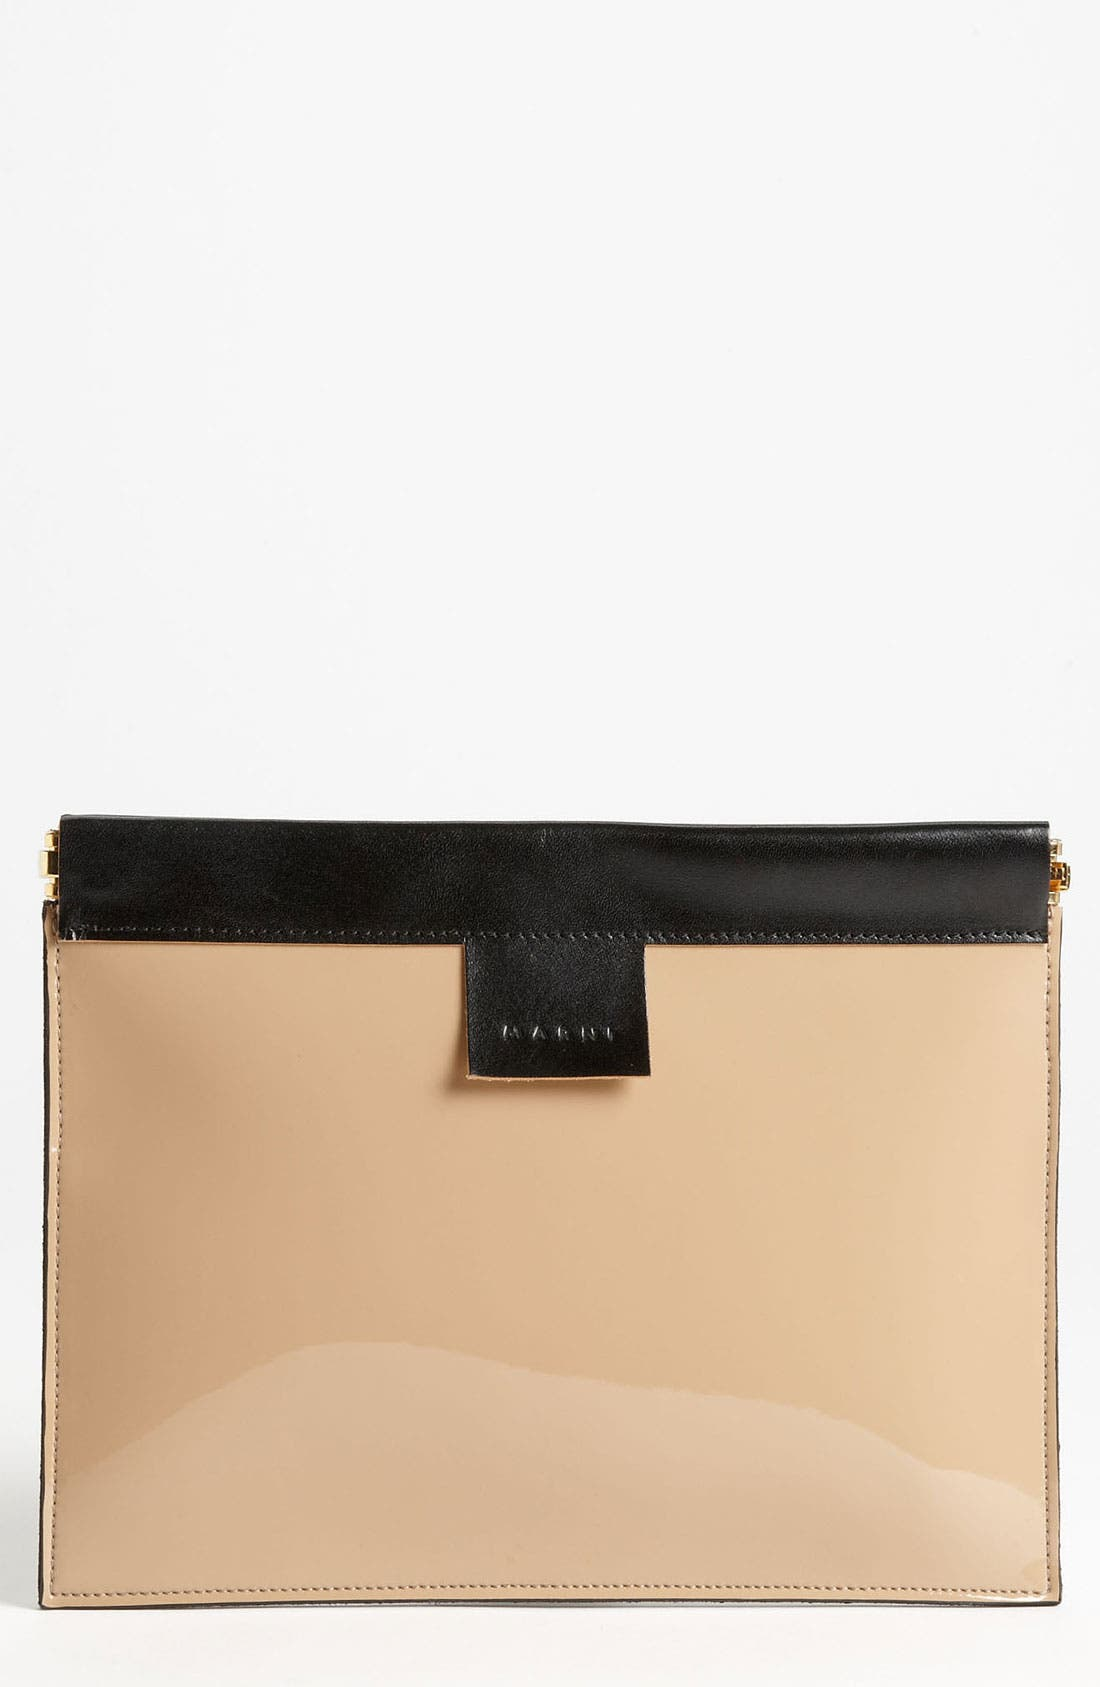 Alternate Image 1 Selected - Marni Bicolor Frame Clutch